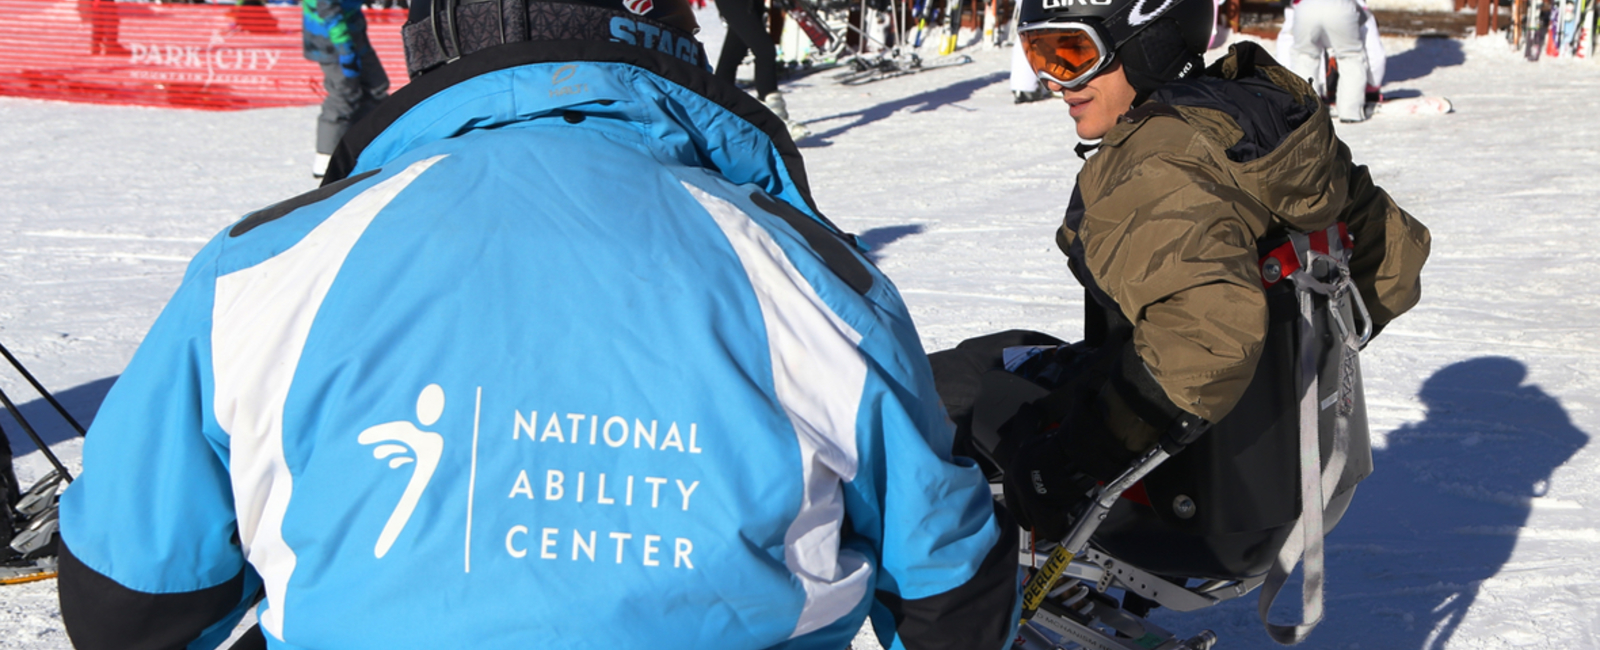 National Ability Center